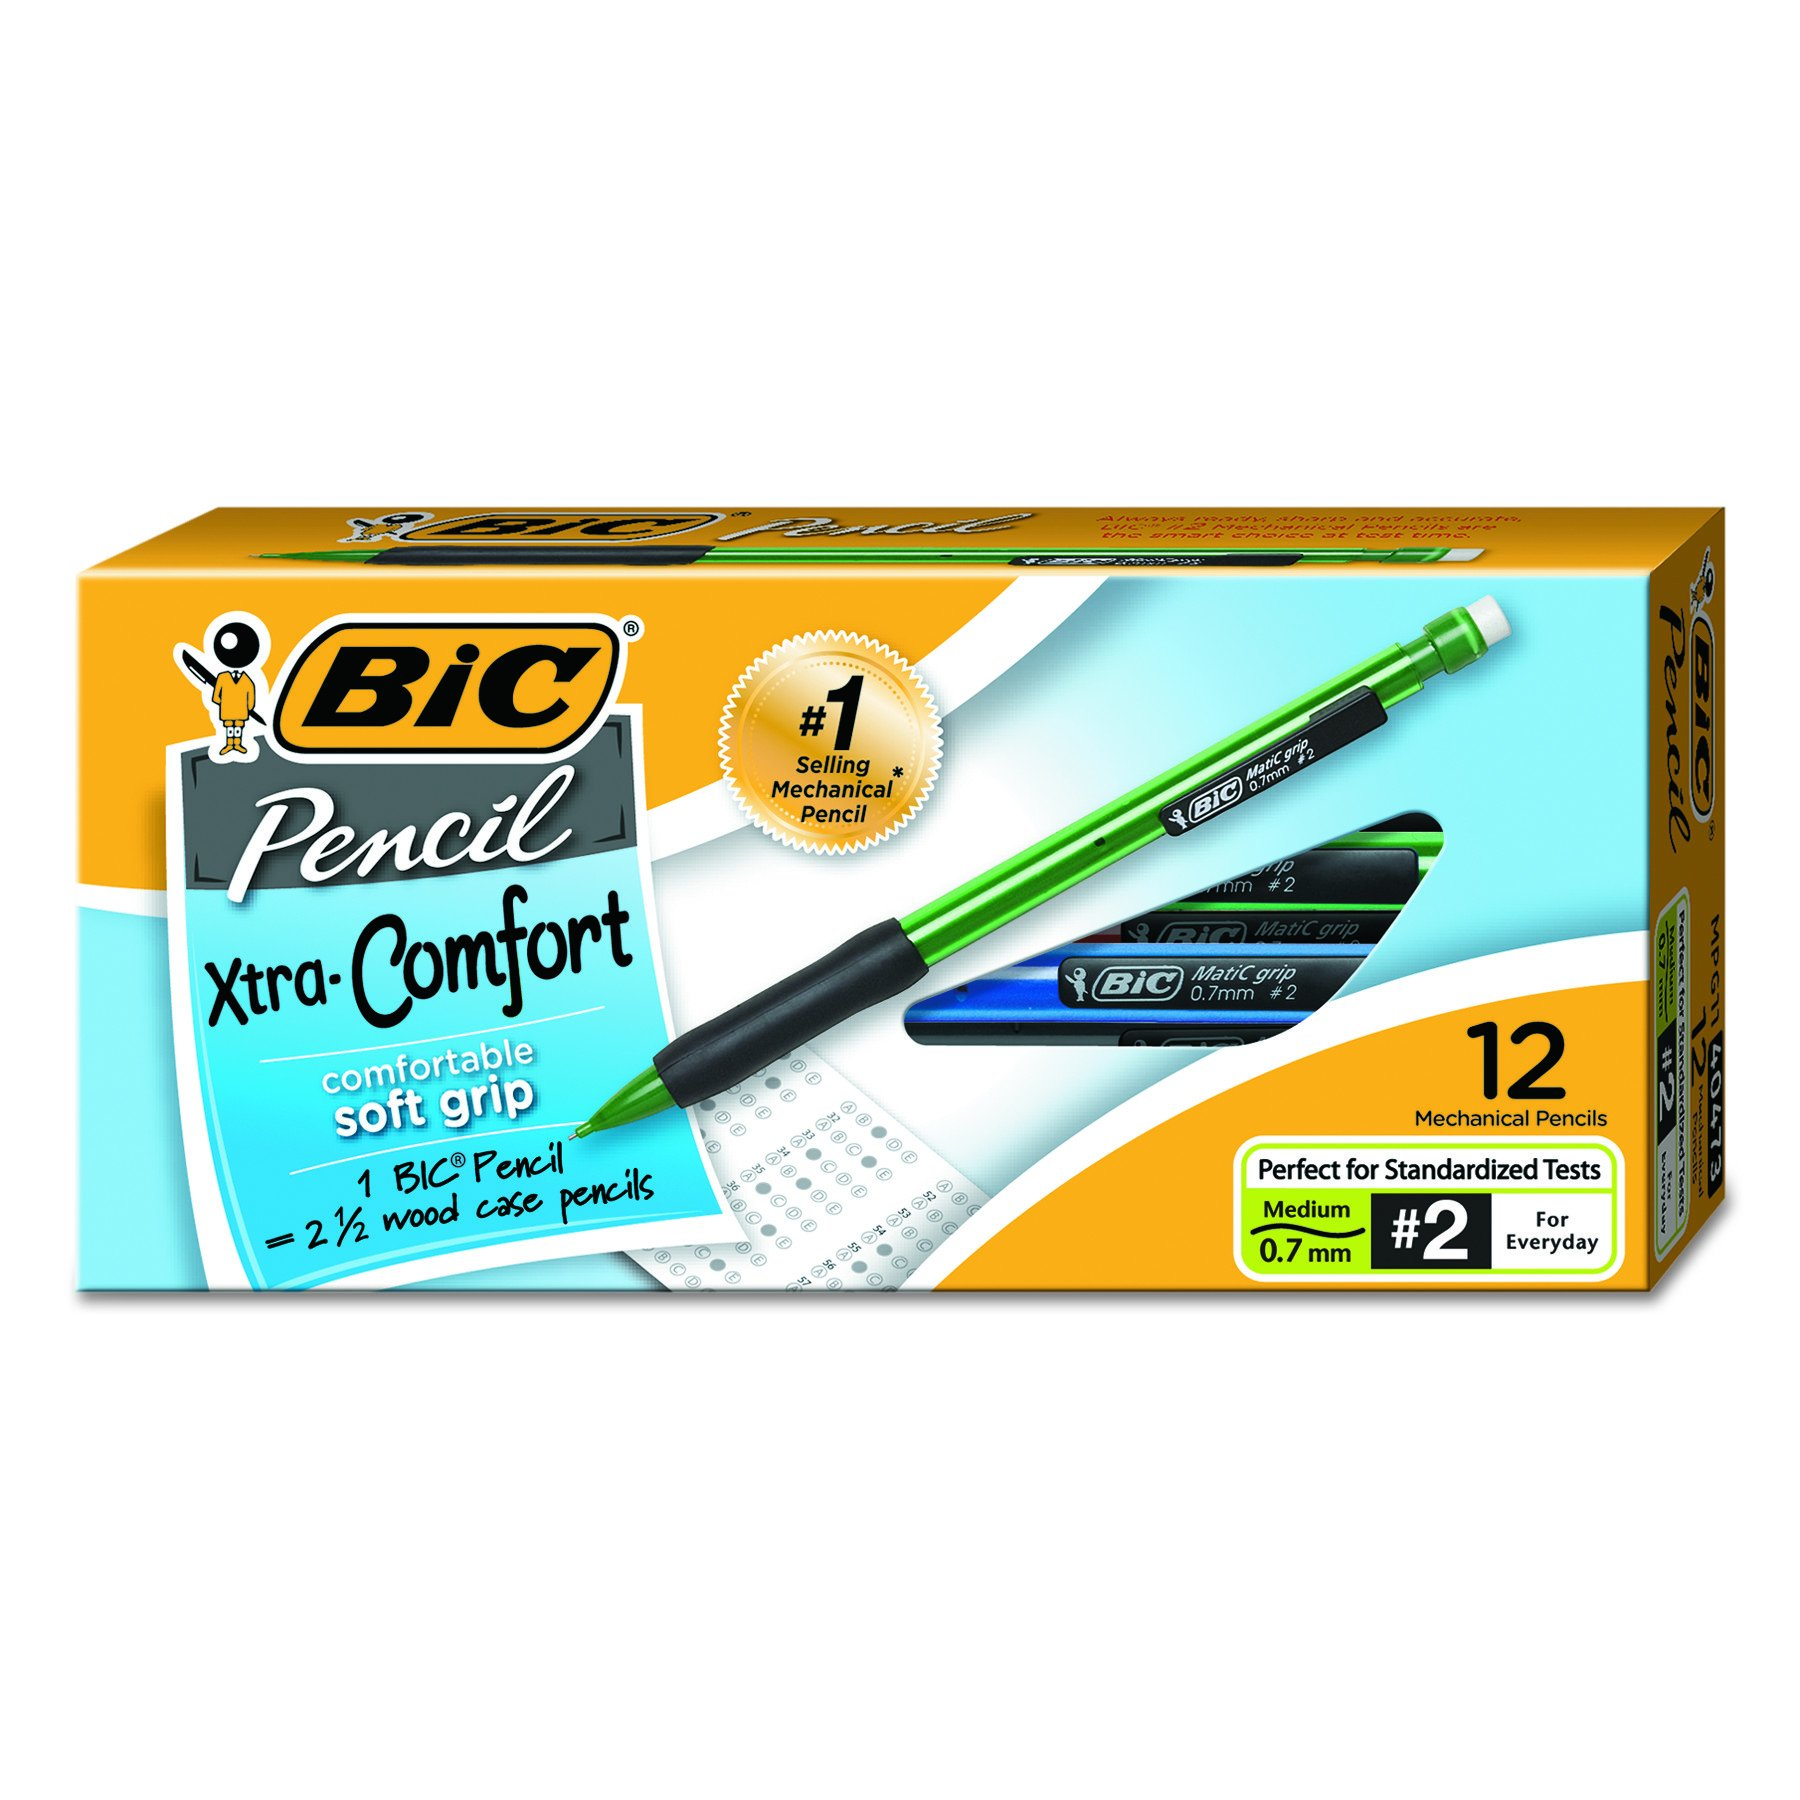 12 Lapices Bic Matic Grip - Portaminas 0.7mm